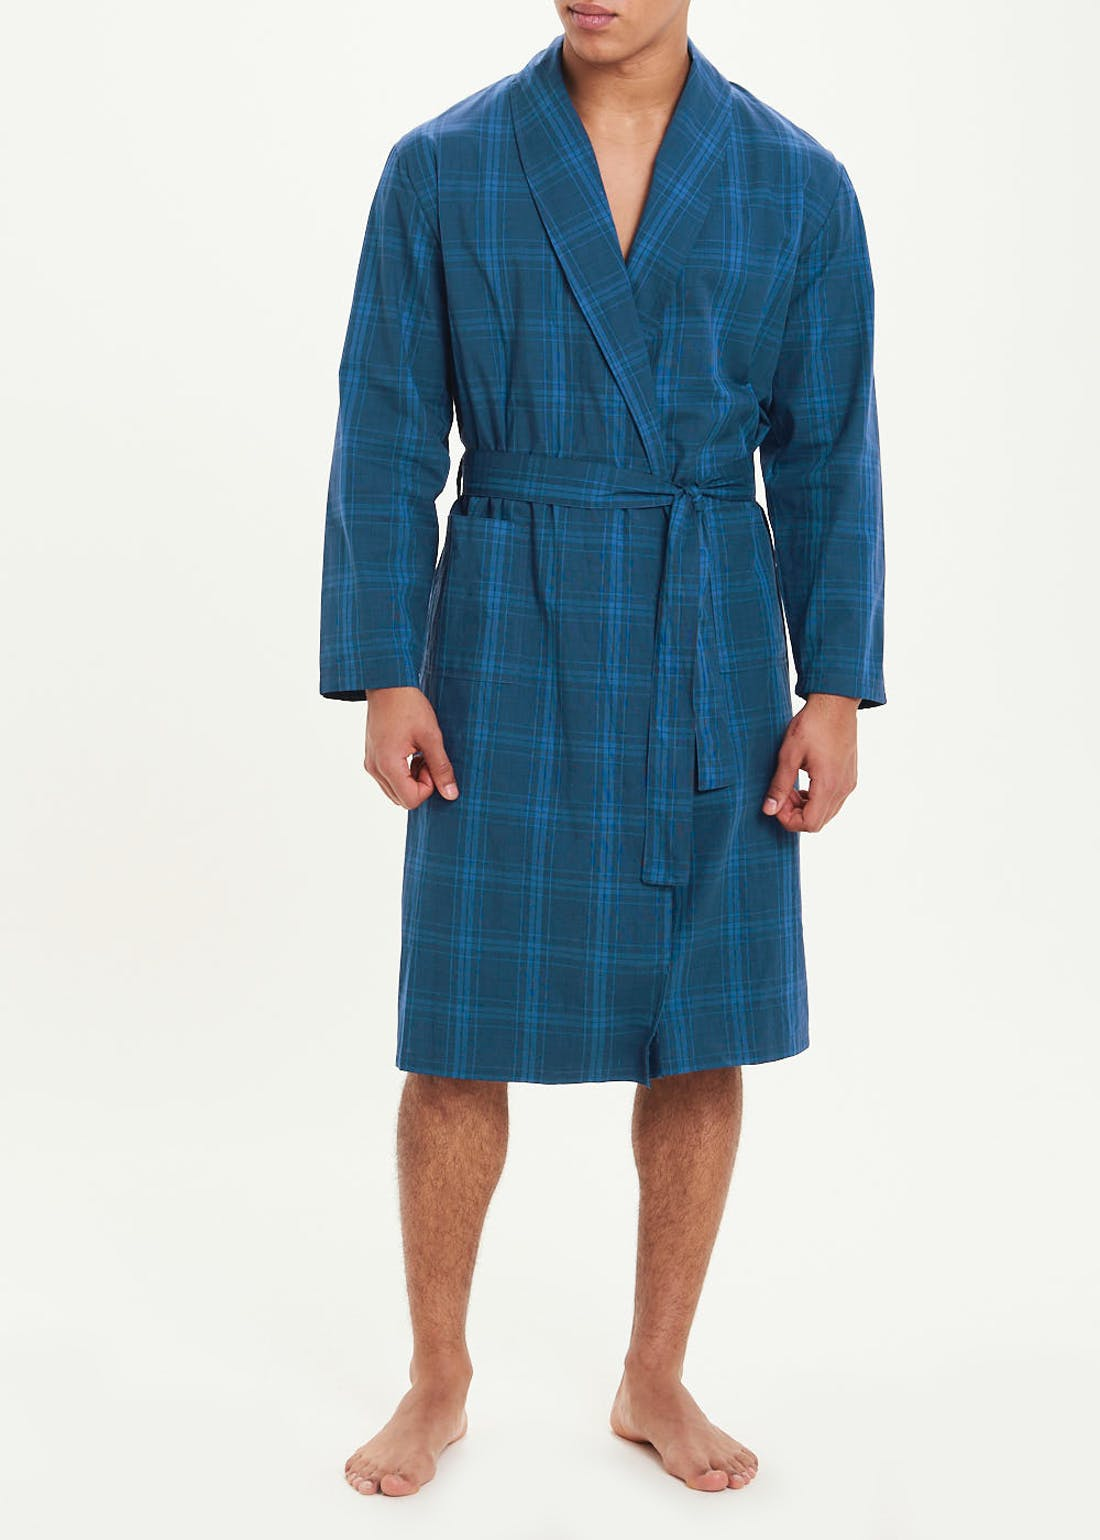 Woven Cotton Check Dressing Gown